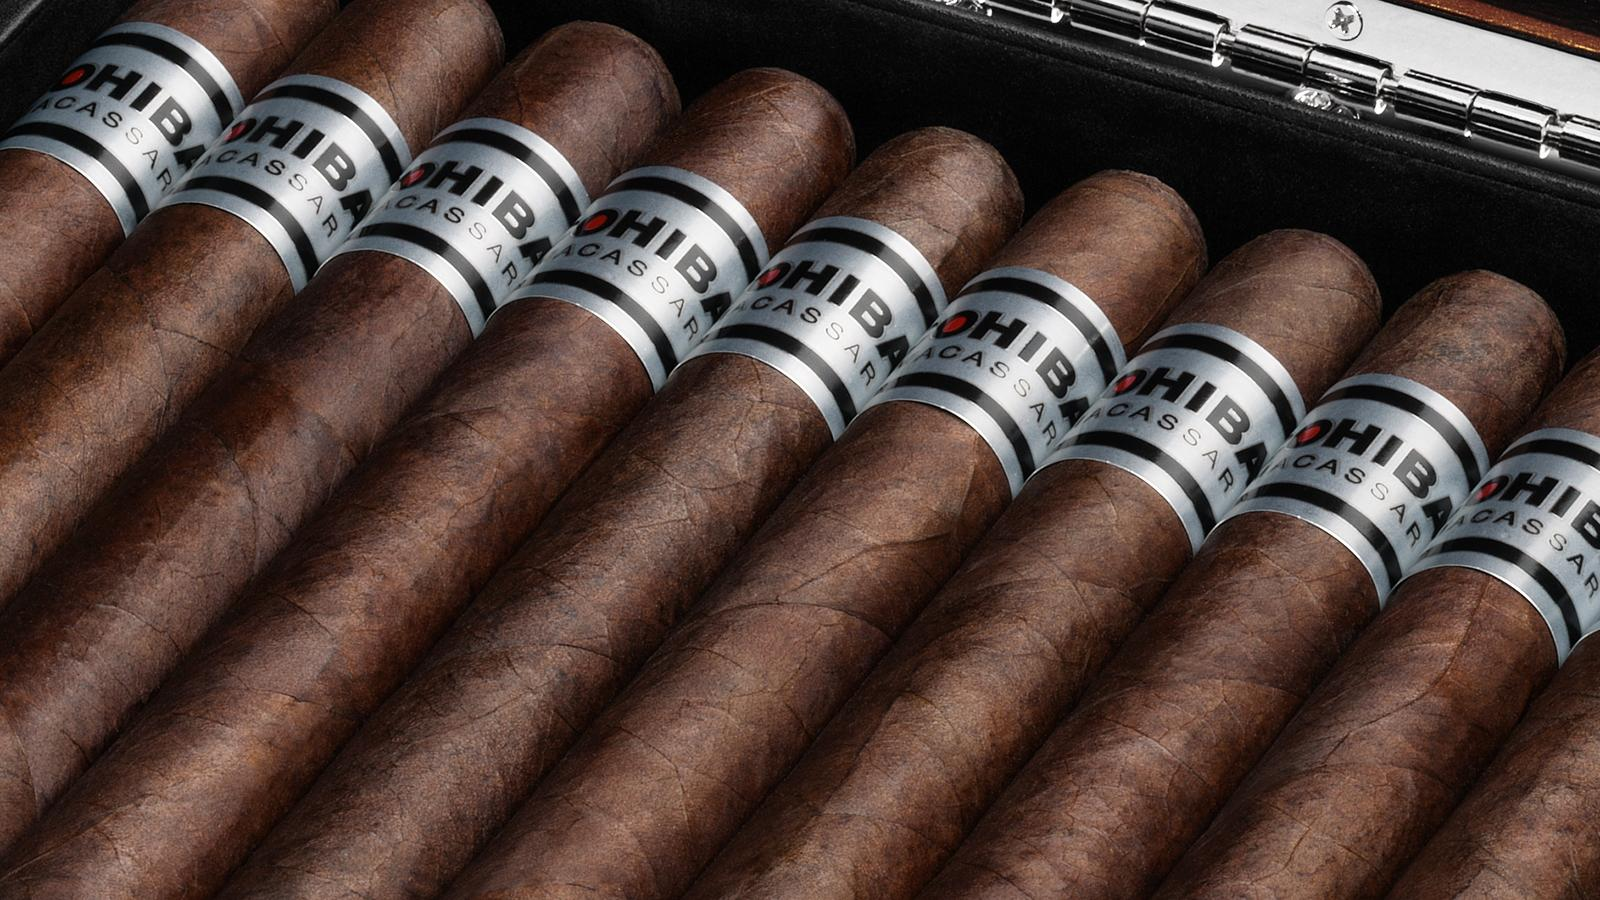 Cohiba Macassar Debuting This Month At IPCPR